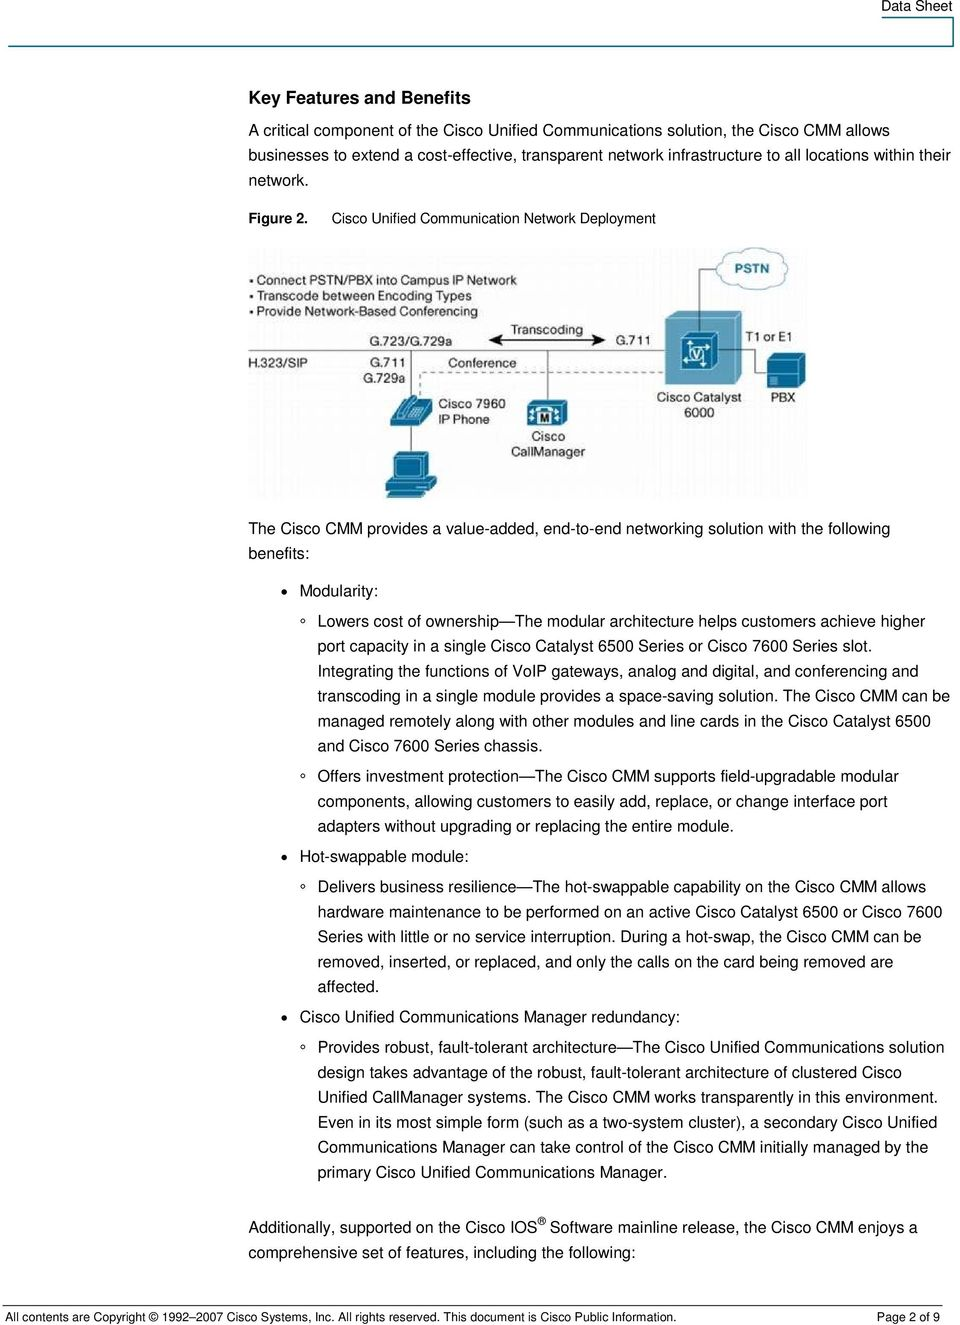 Cisco Unified Communication Network Deployment The Cisco CMM provides a value-added, end-to-end networking solution with the following benefits: Modularity: Lowers cost of ownership The modular